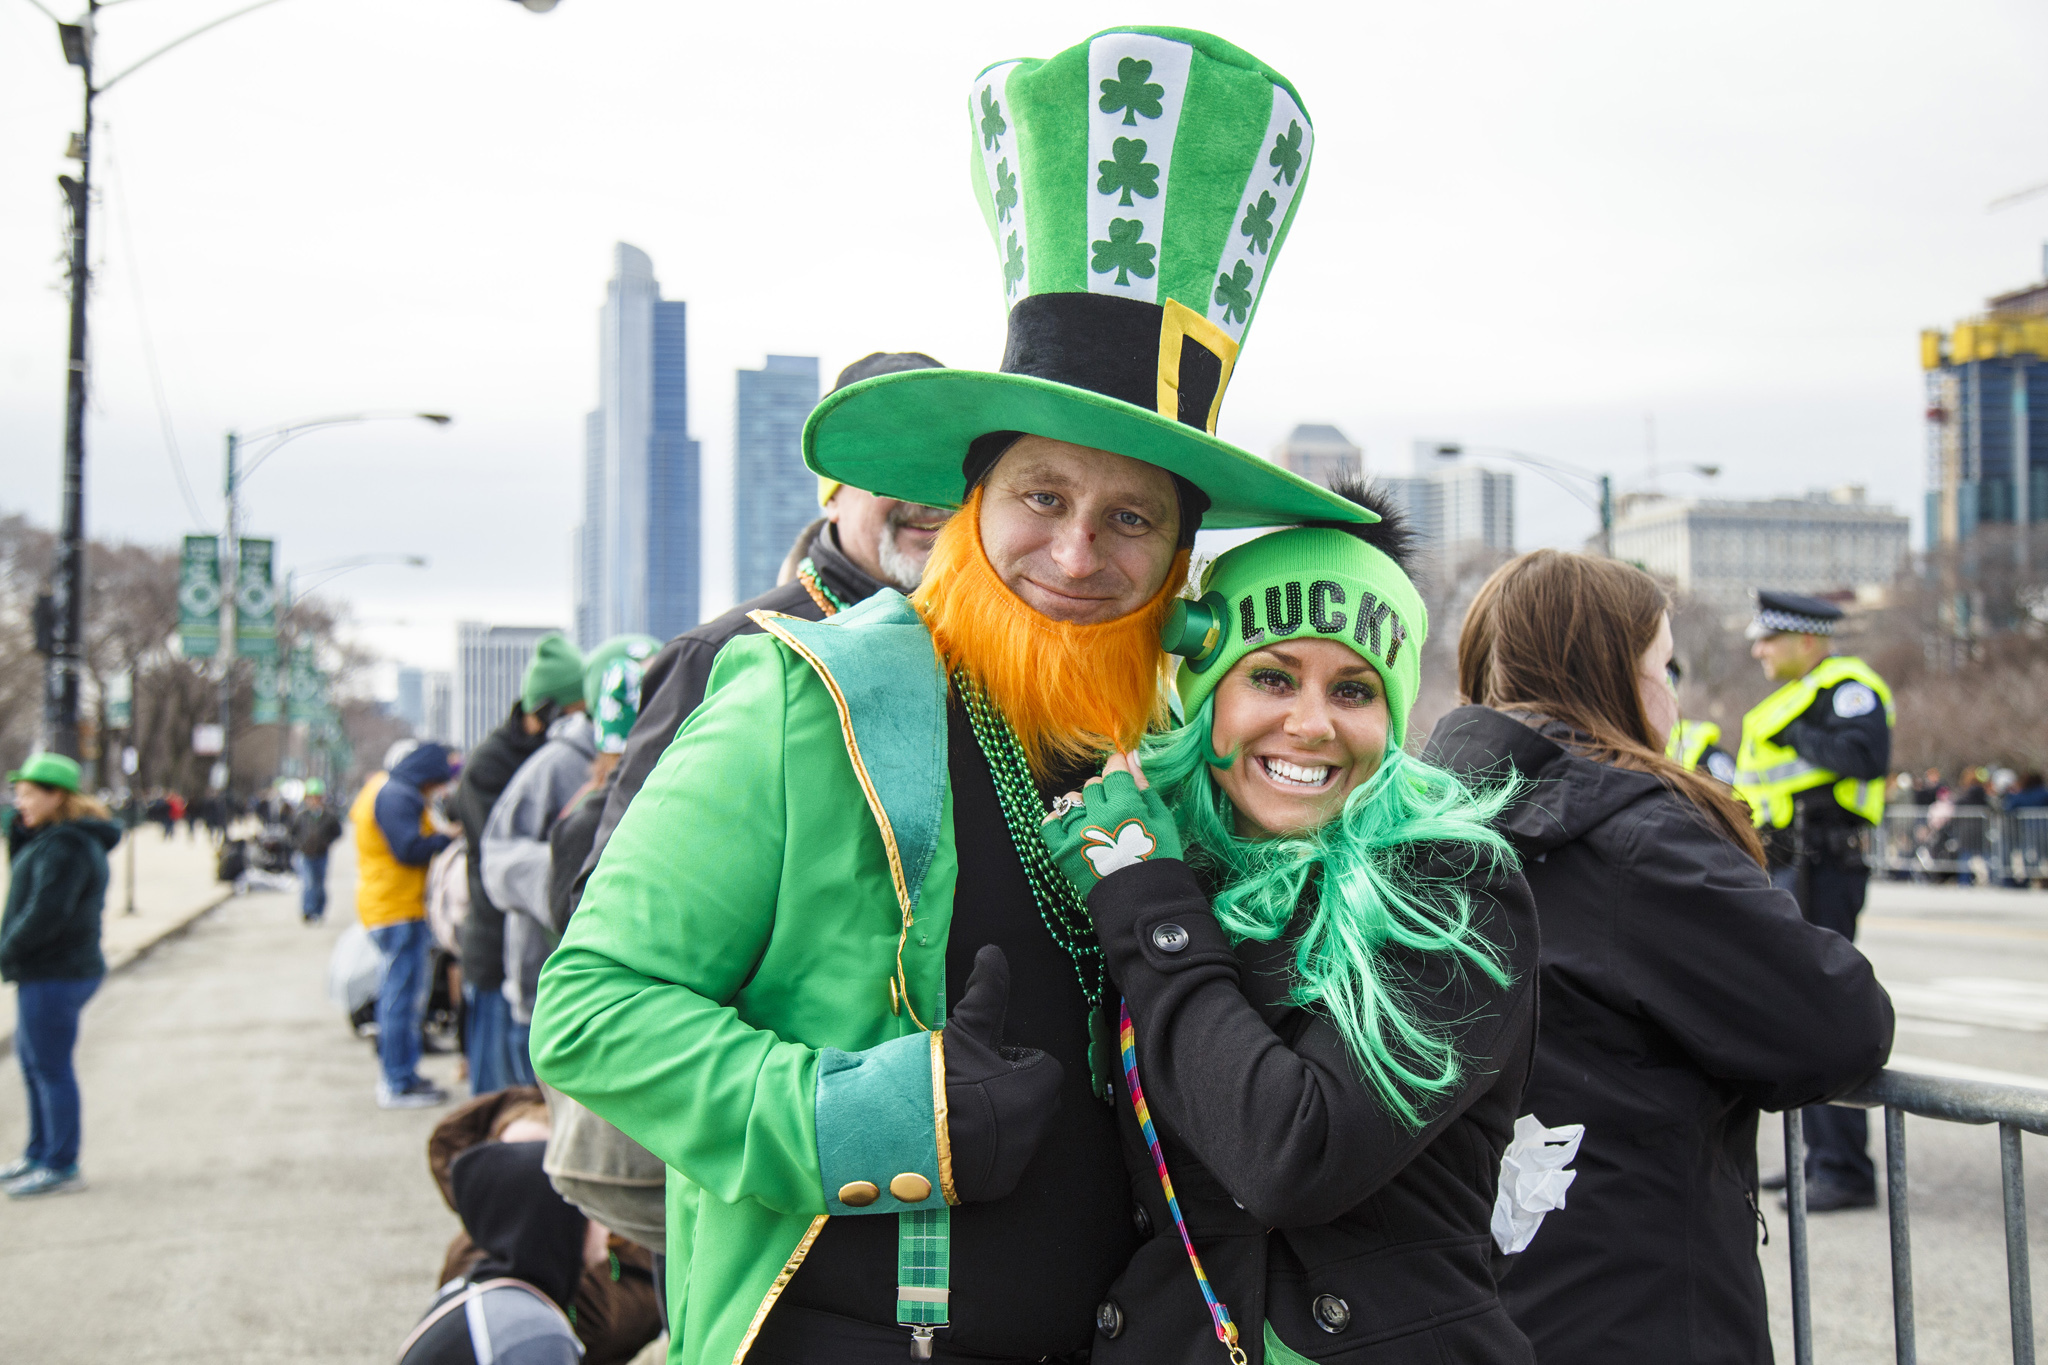 12ad0b4a1 Where to Watch the St. Patrick's Day Parade in Chicago